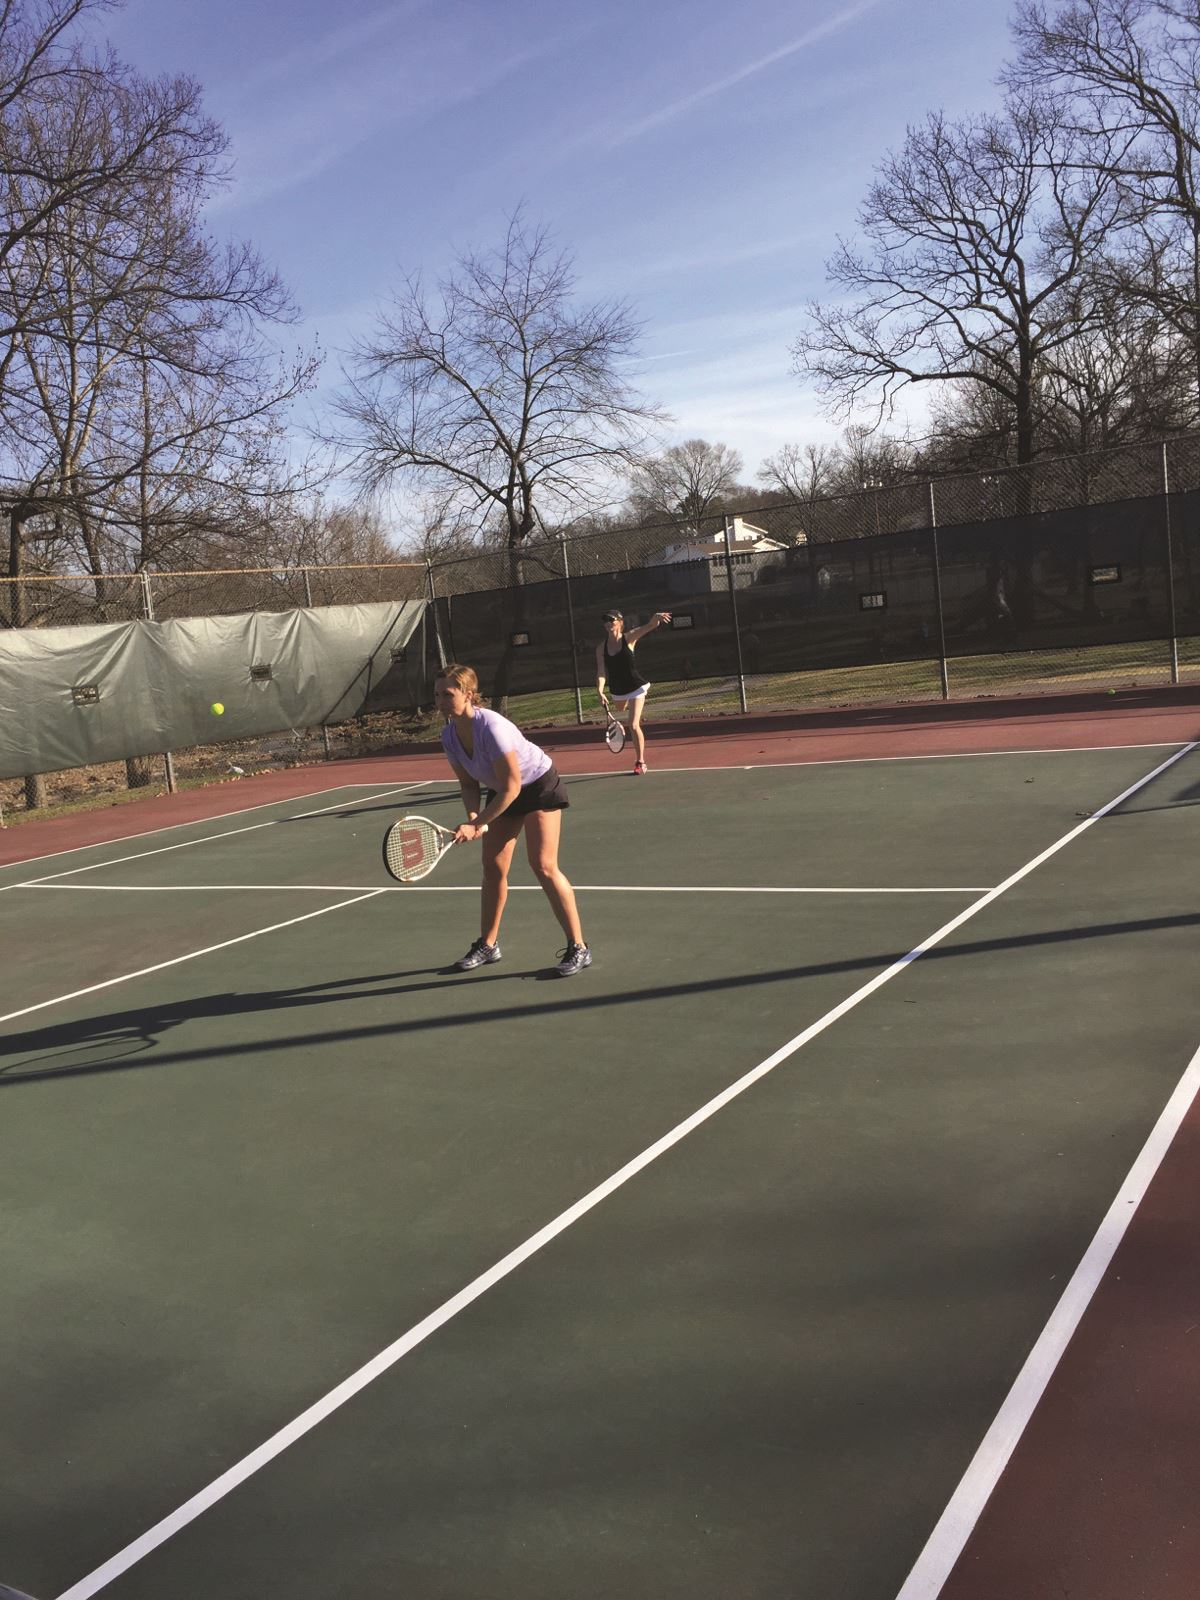 Two ladies playing tennis at Henson Park Tennis Center.